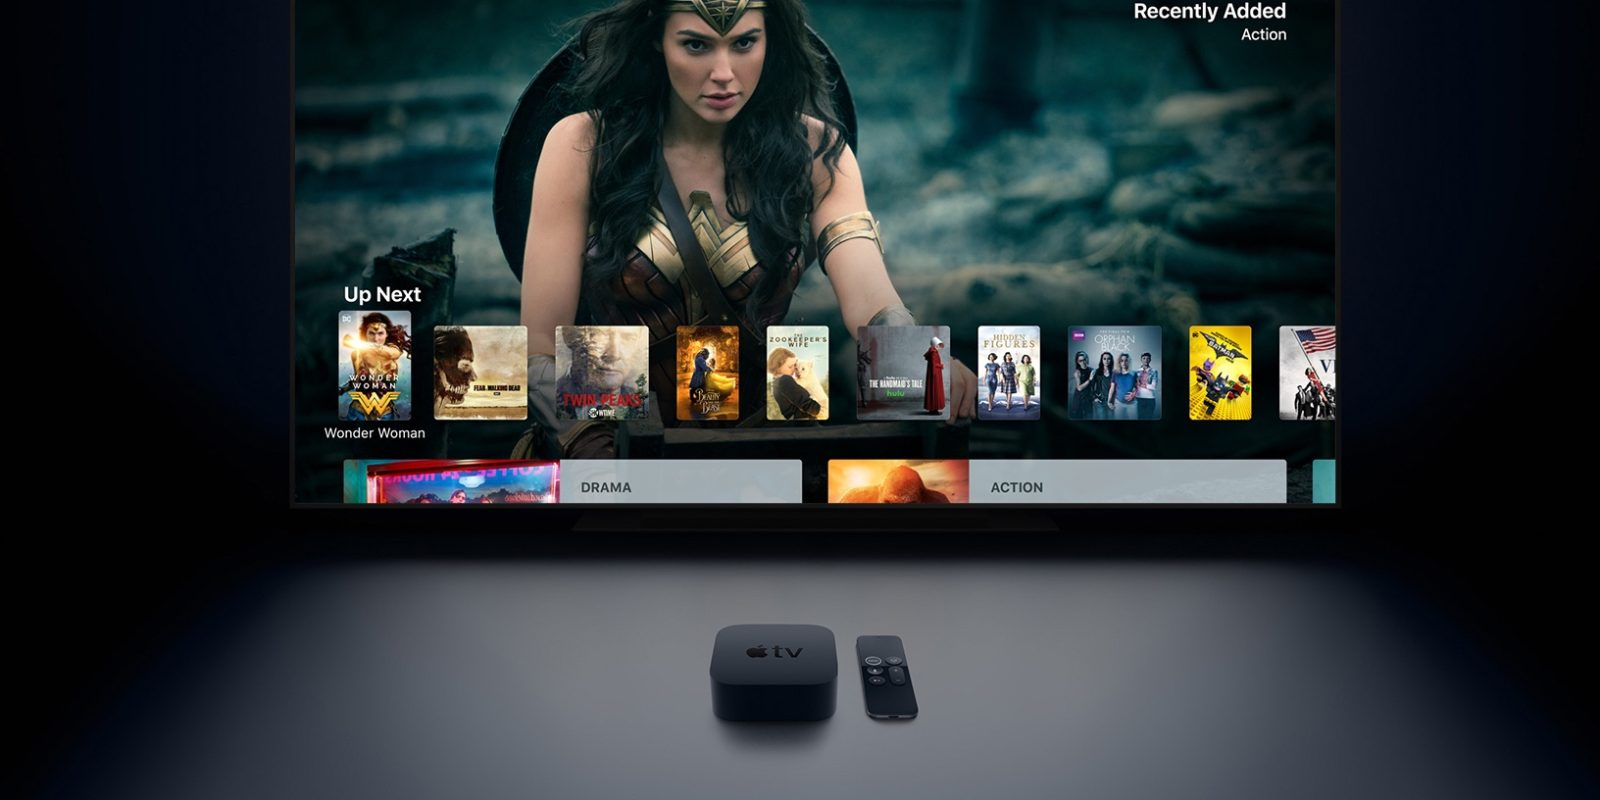 Apple TV 4K will support Dolby Atmos surround sound eventually